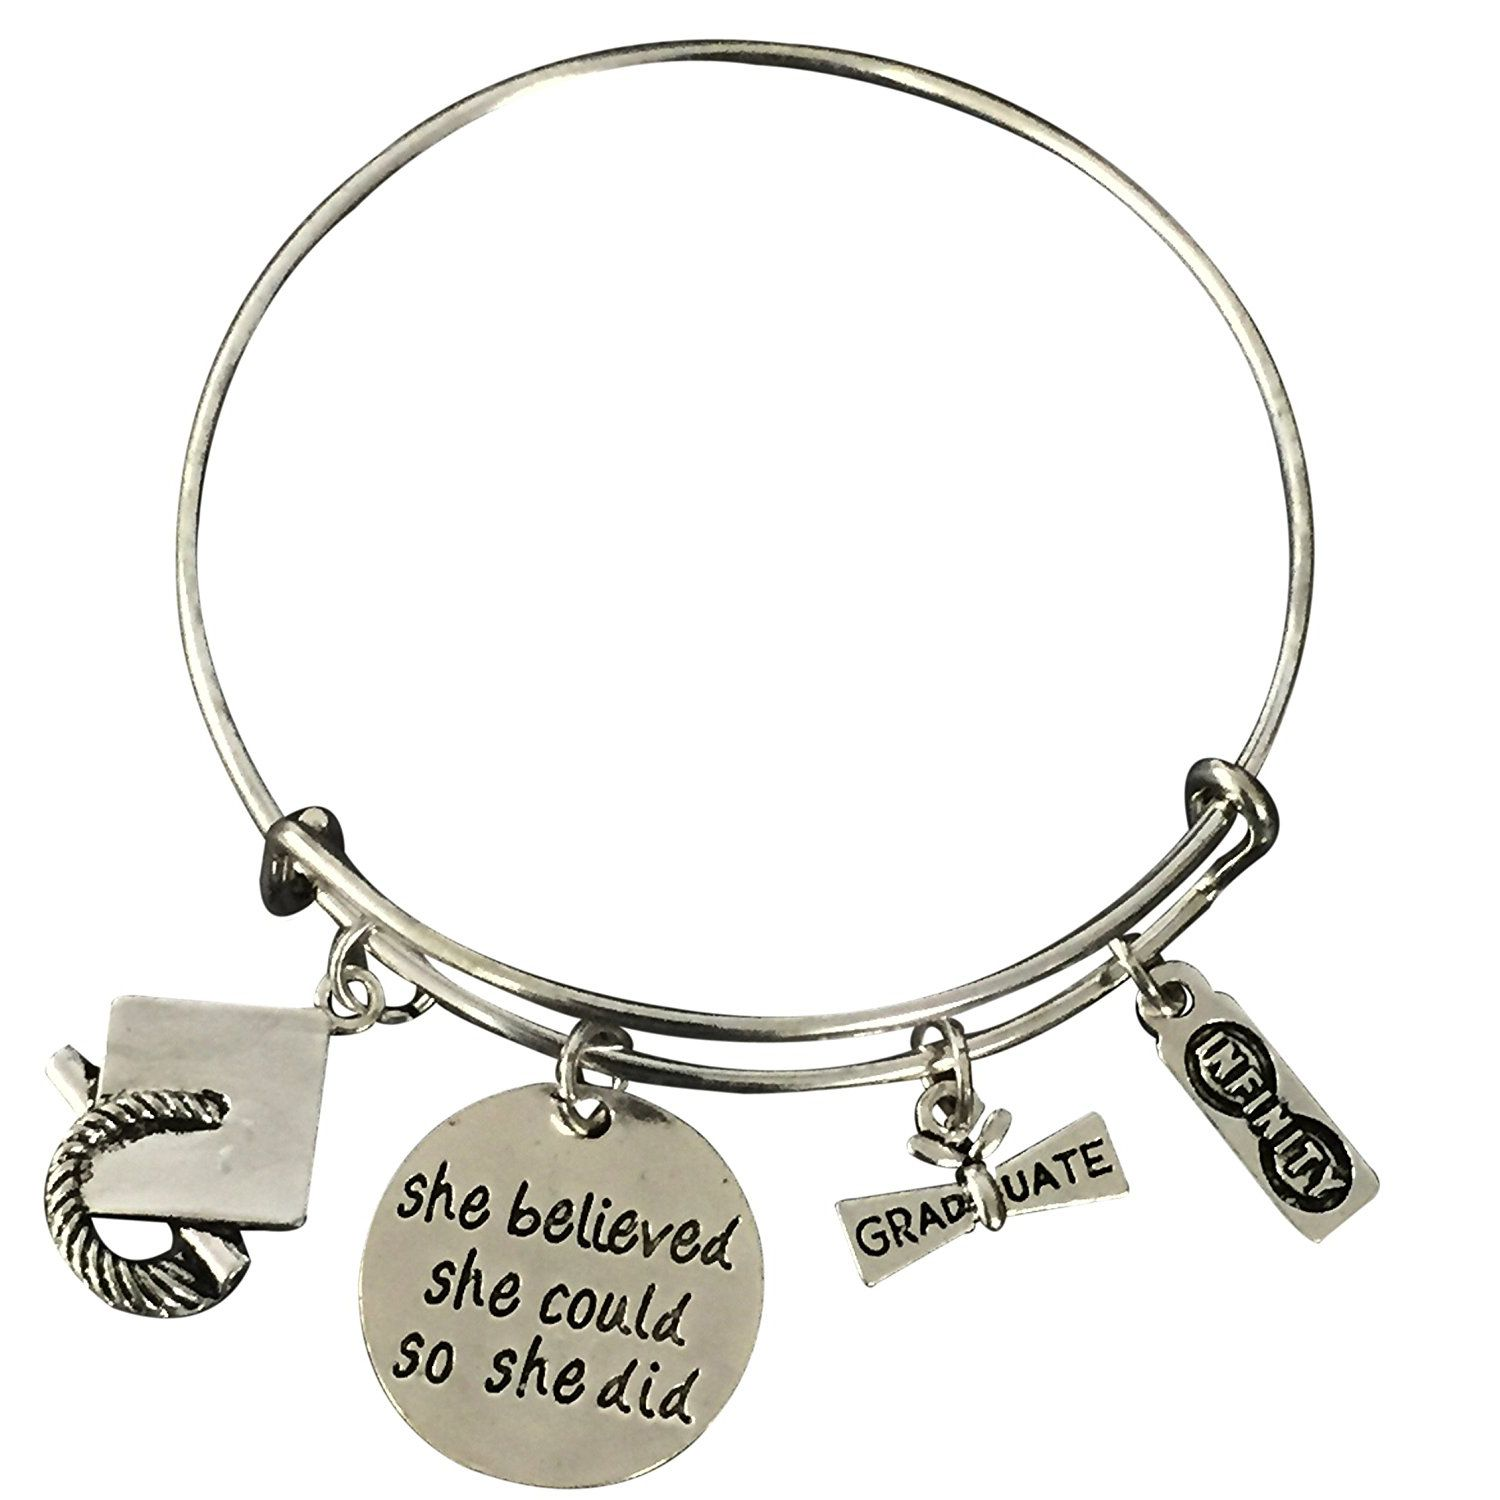 bedb designs gift graduation custom contagious products bracelet